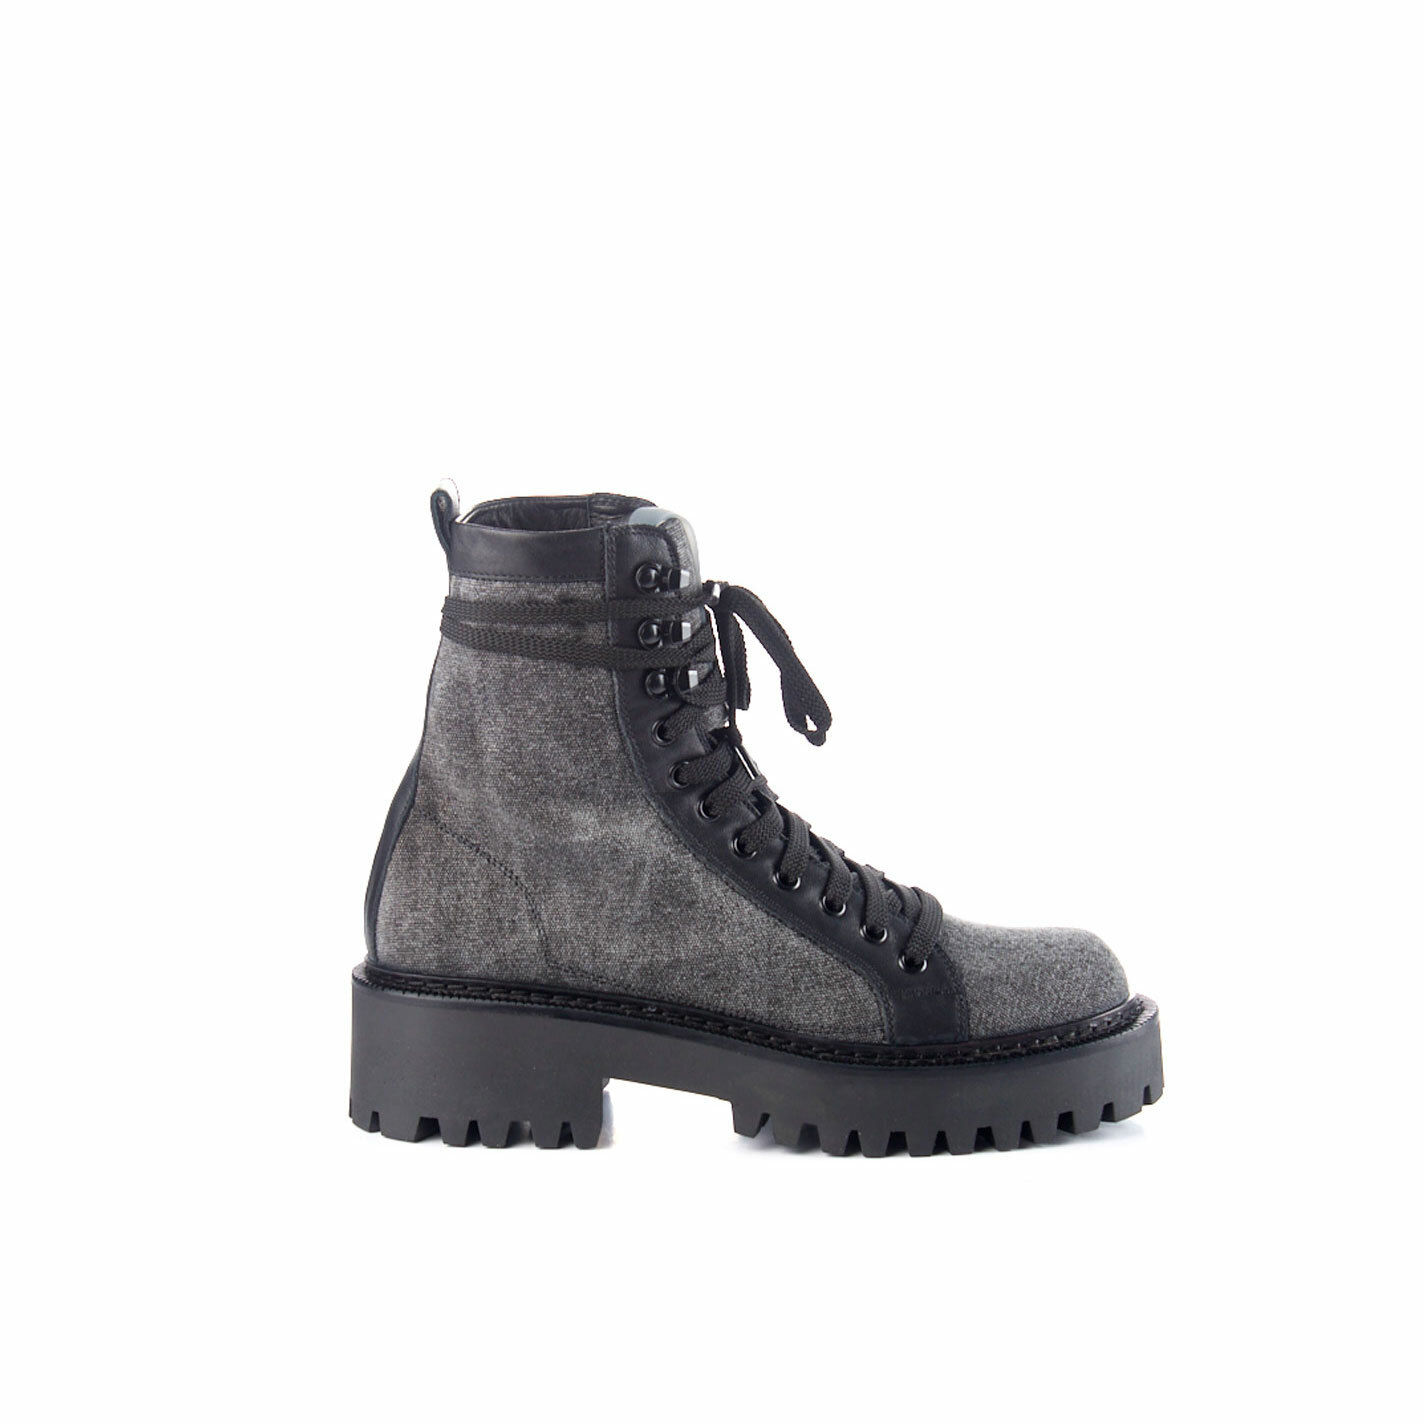 Black calfskin and canvas walking boots